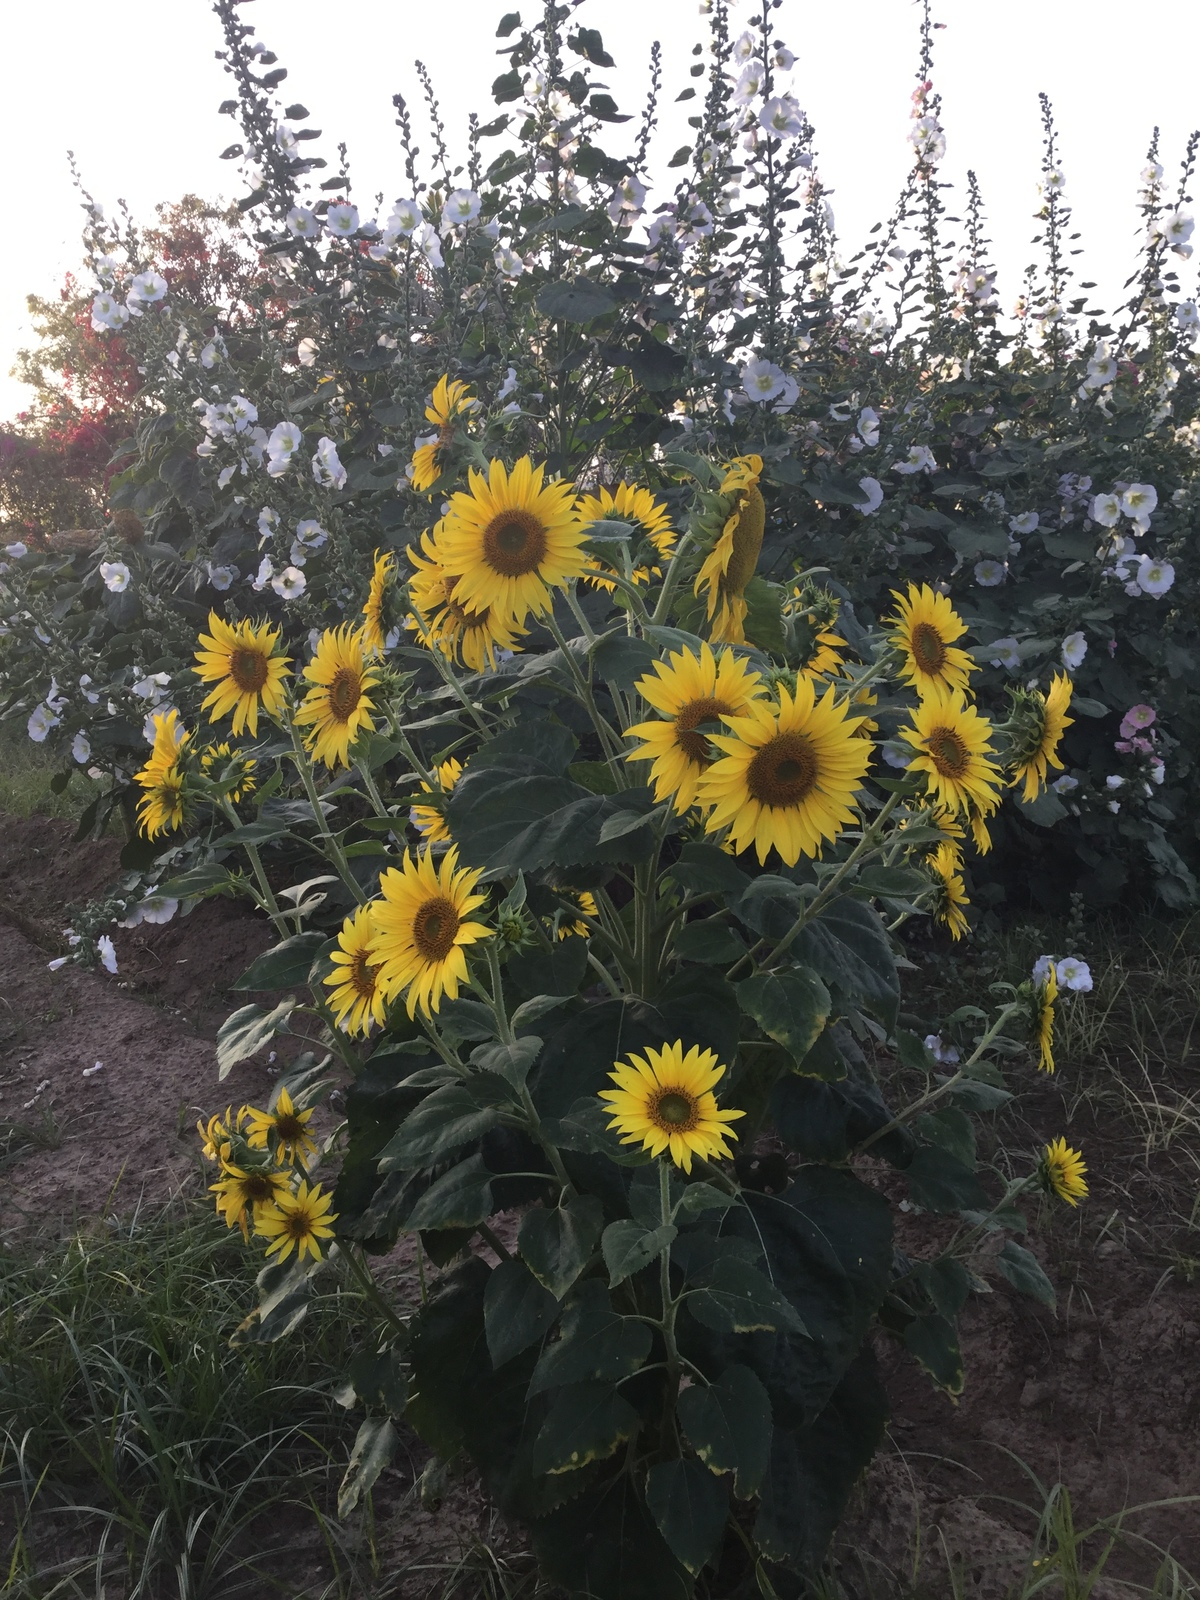 sunflowers 1200